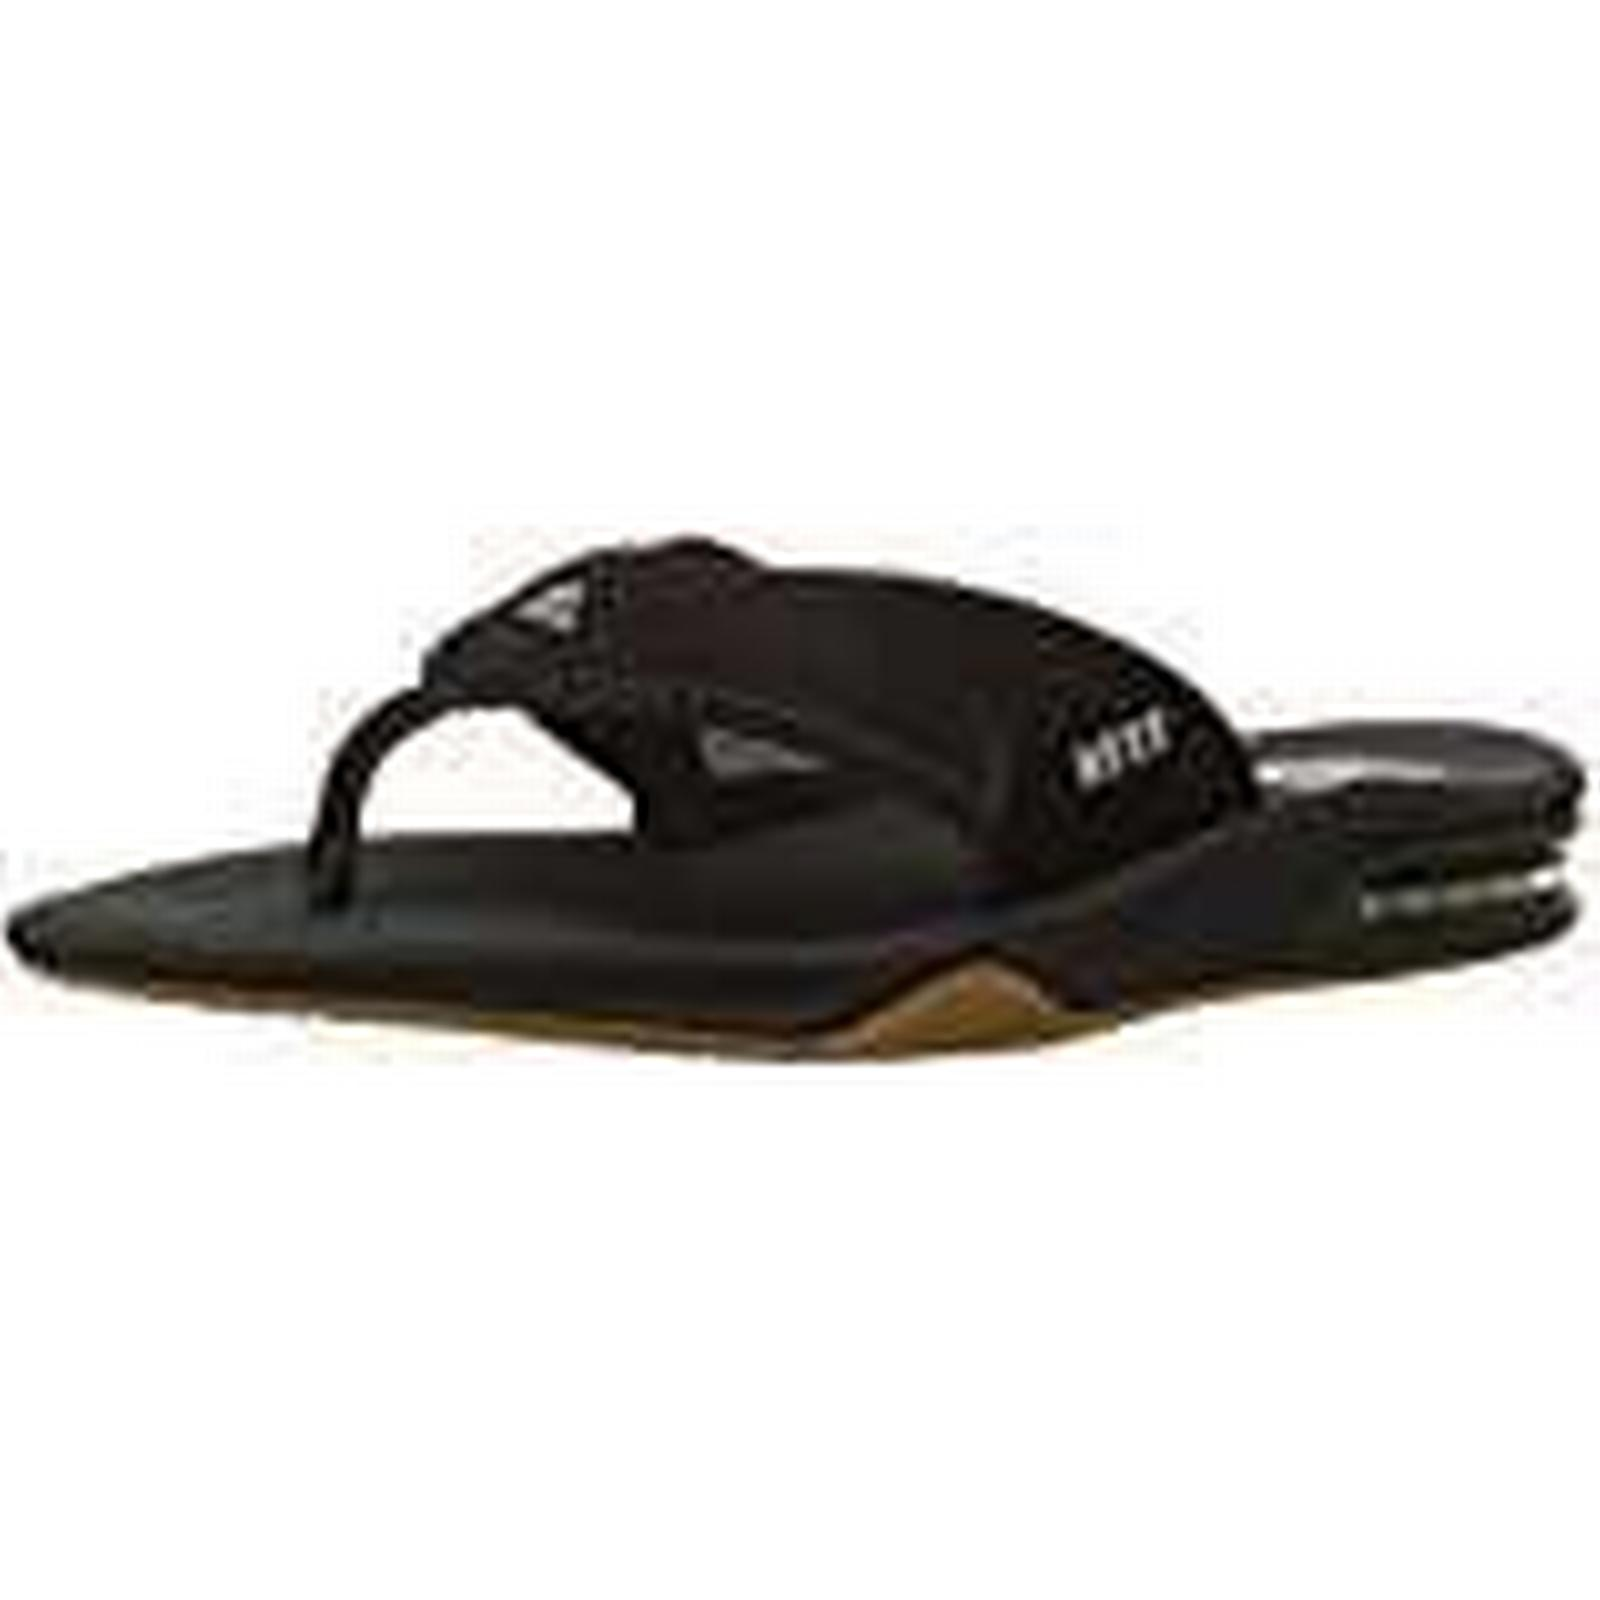 Reef Men's Fanning Sandals, Black UK (Black / Silver), 8 UK Black 4111c5